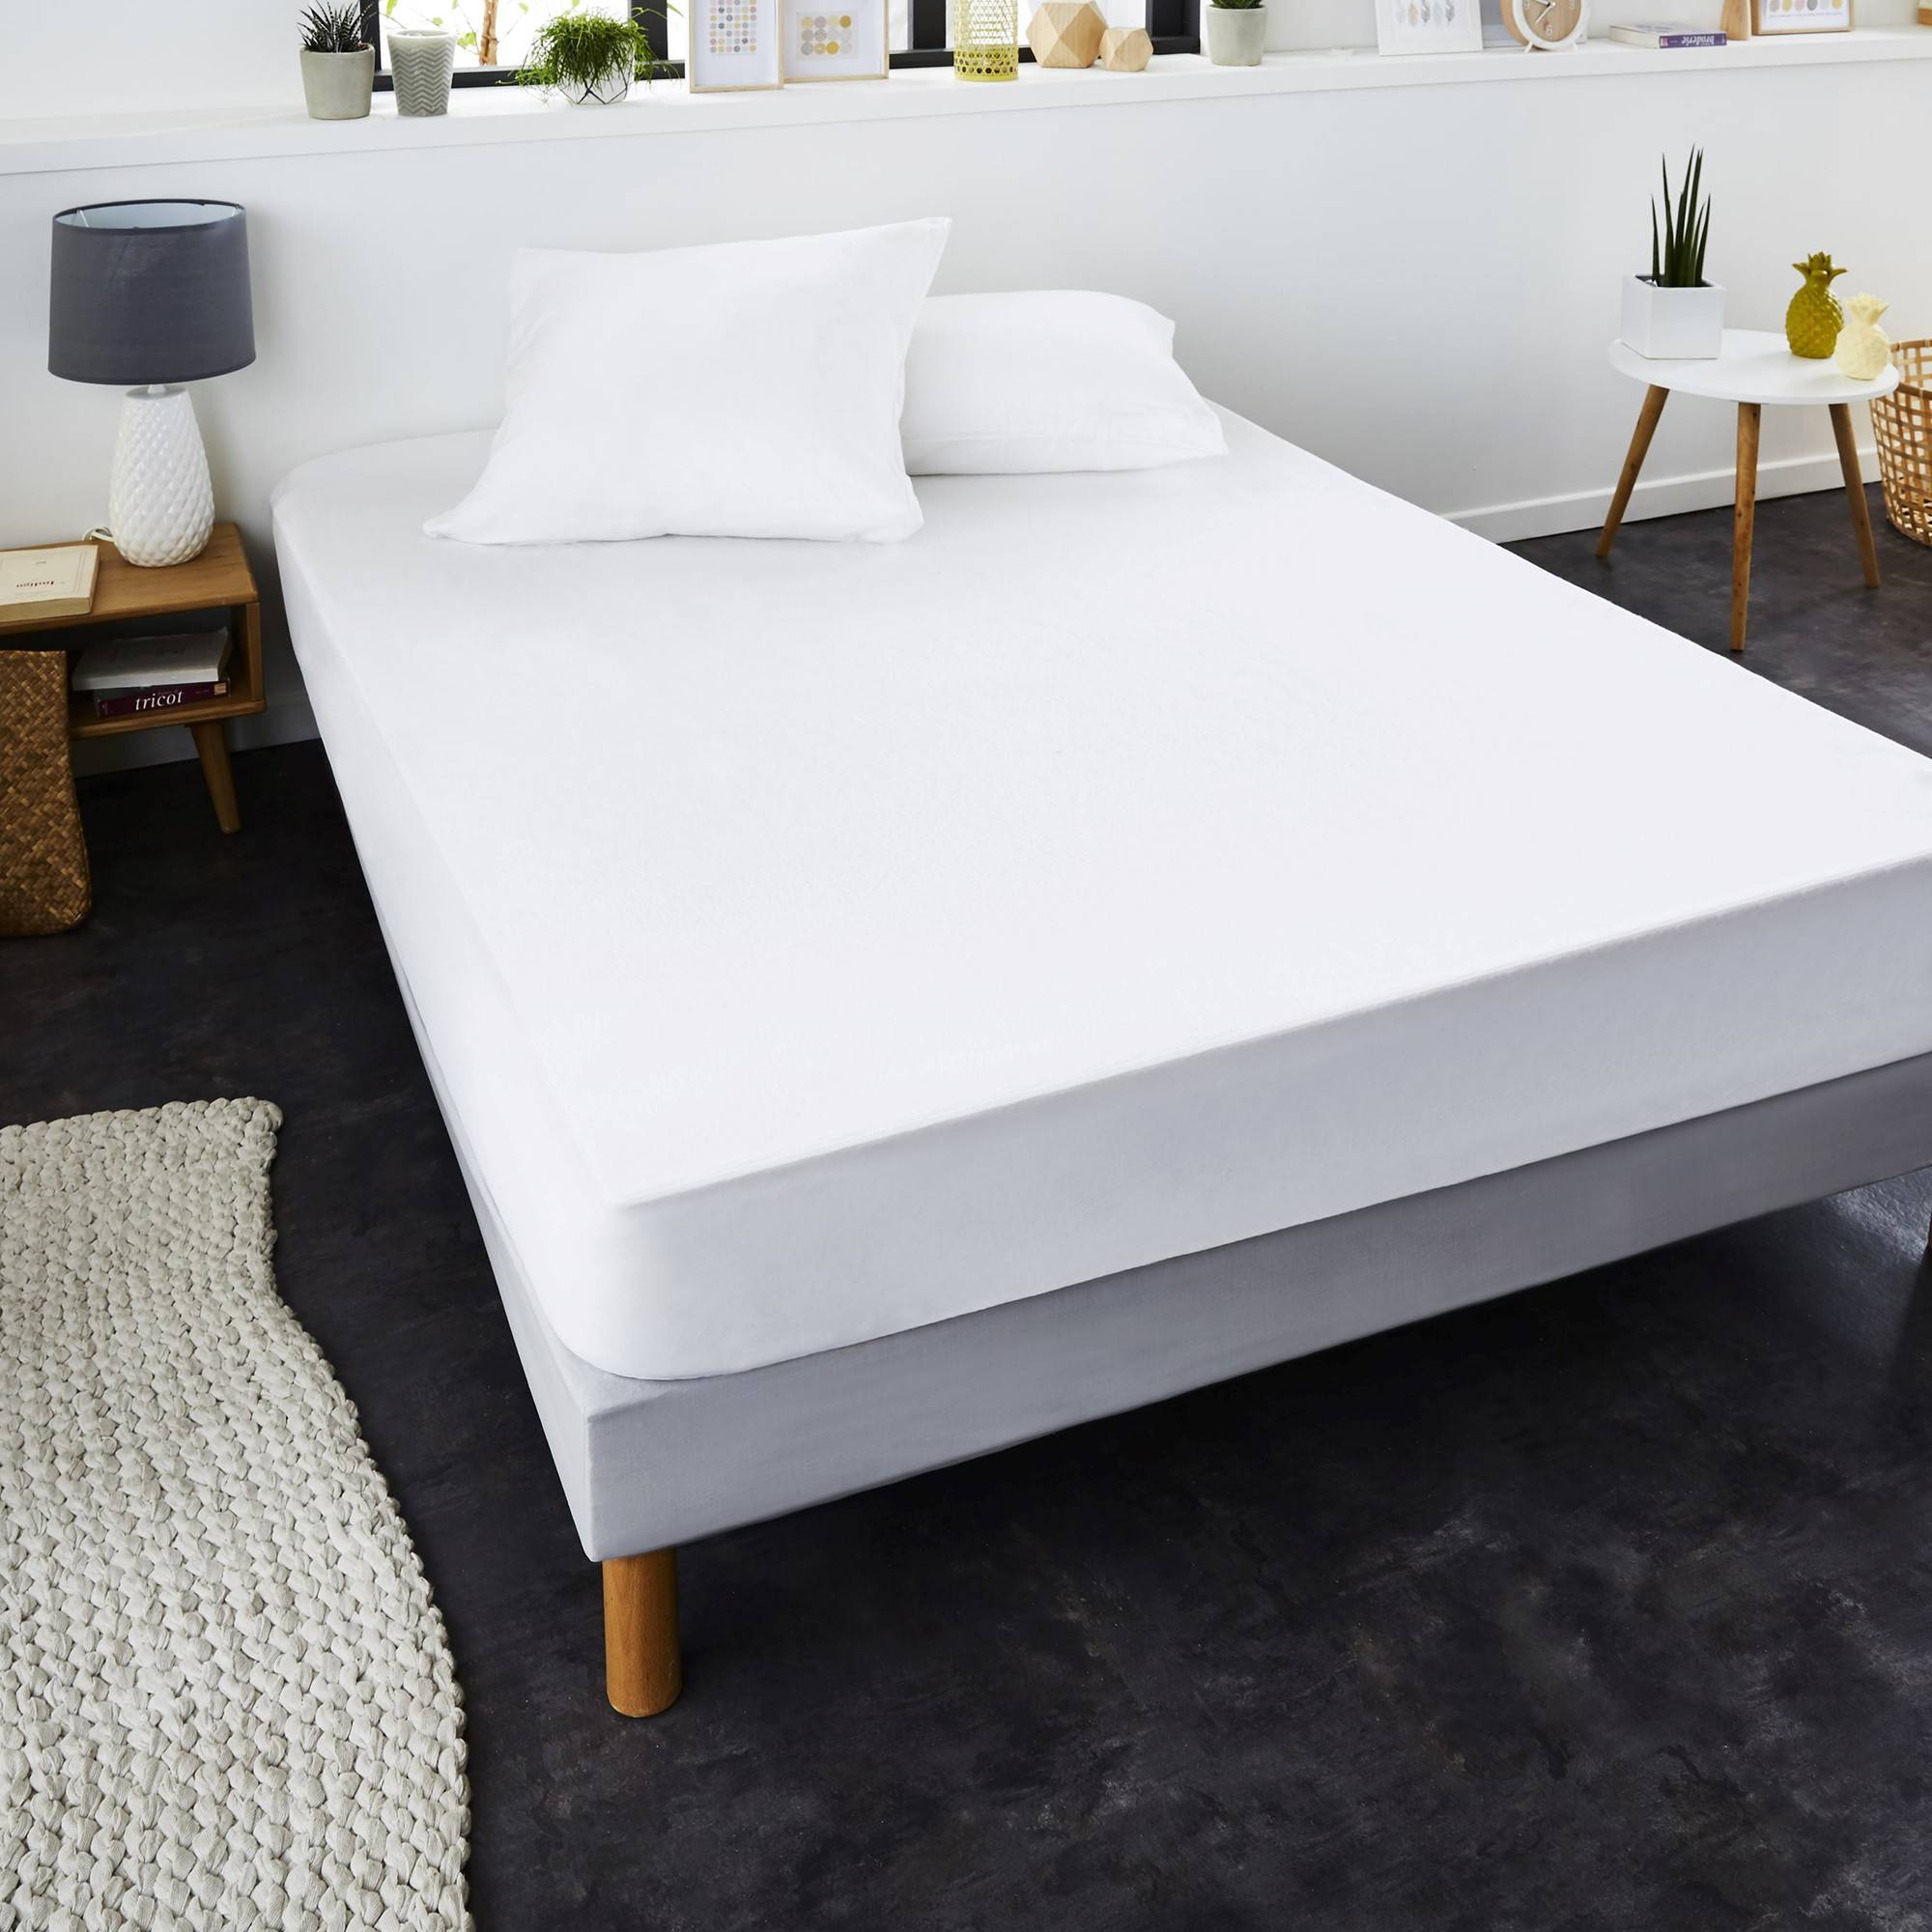 Protège matelas 1 pers 90x200cm - blanc - Protège-matelas anti-acariens Greenfirst® molleton absorbant - Blancheporte